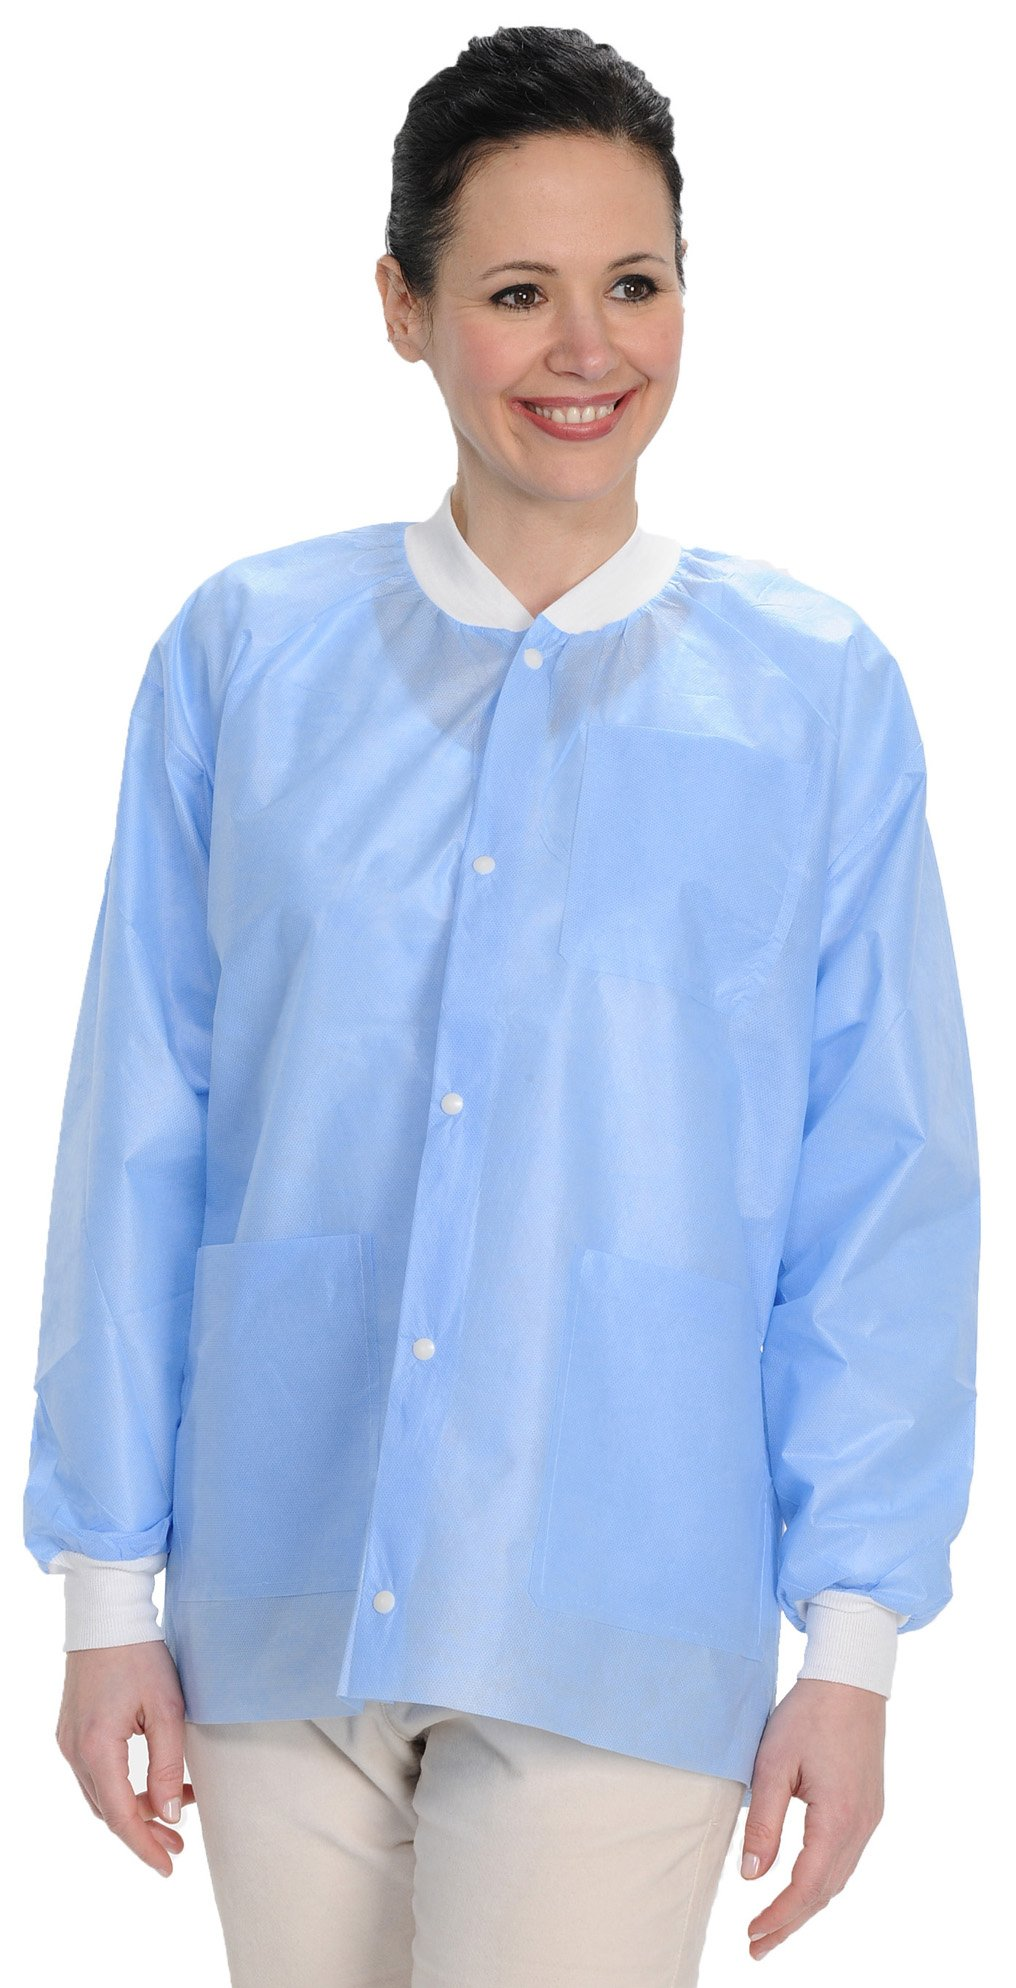 ValuMax 3530MBXS Easy Breathe Cool and Strong, No-Wrinkle, Professional Disposable SMS Hip Length Jacket, Medical Blue, XS, Pack of 10